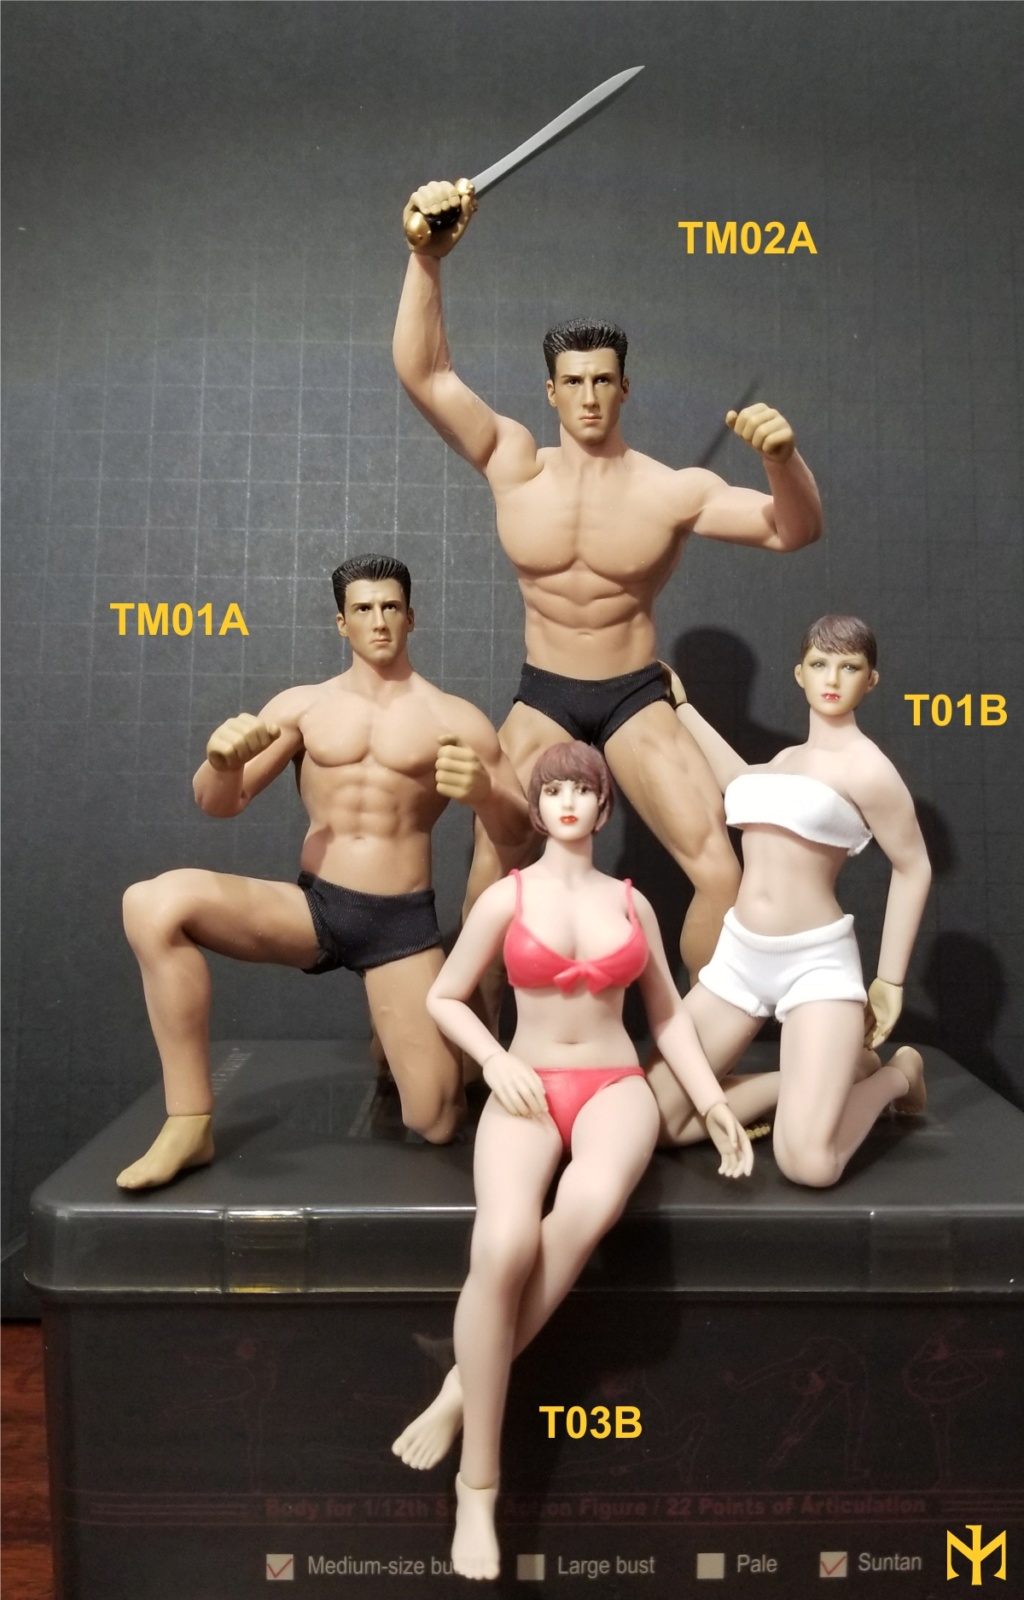 phicen - TBLeague / Phicen T03B 1:12 seamless female body and friends T03b0910